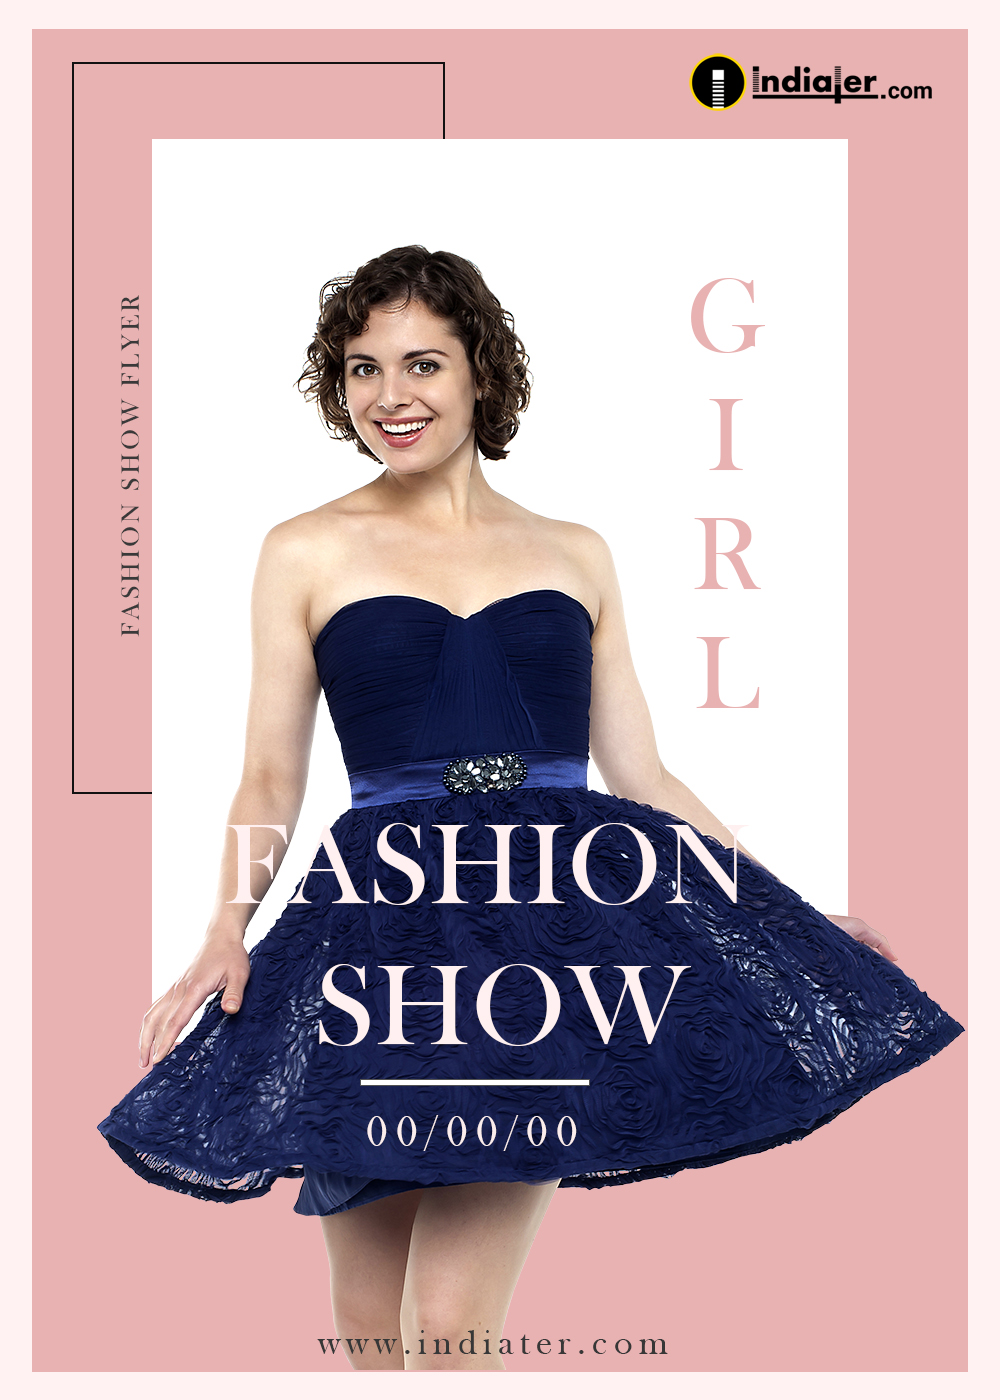 Fashion show Week Flyer Template Design